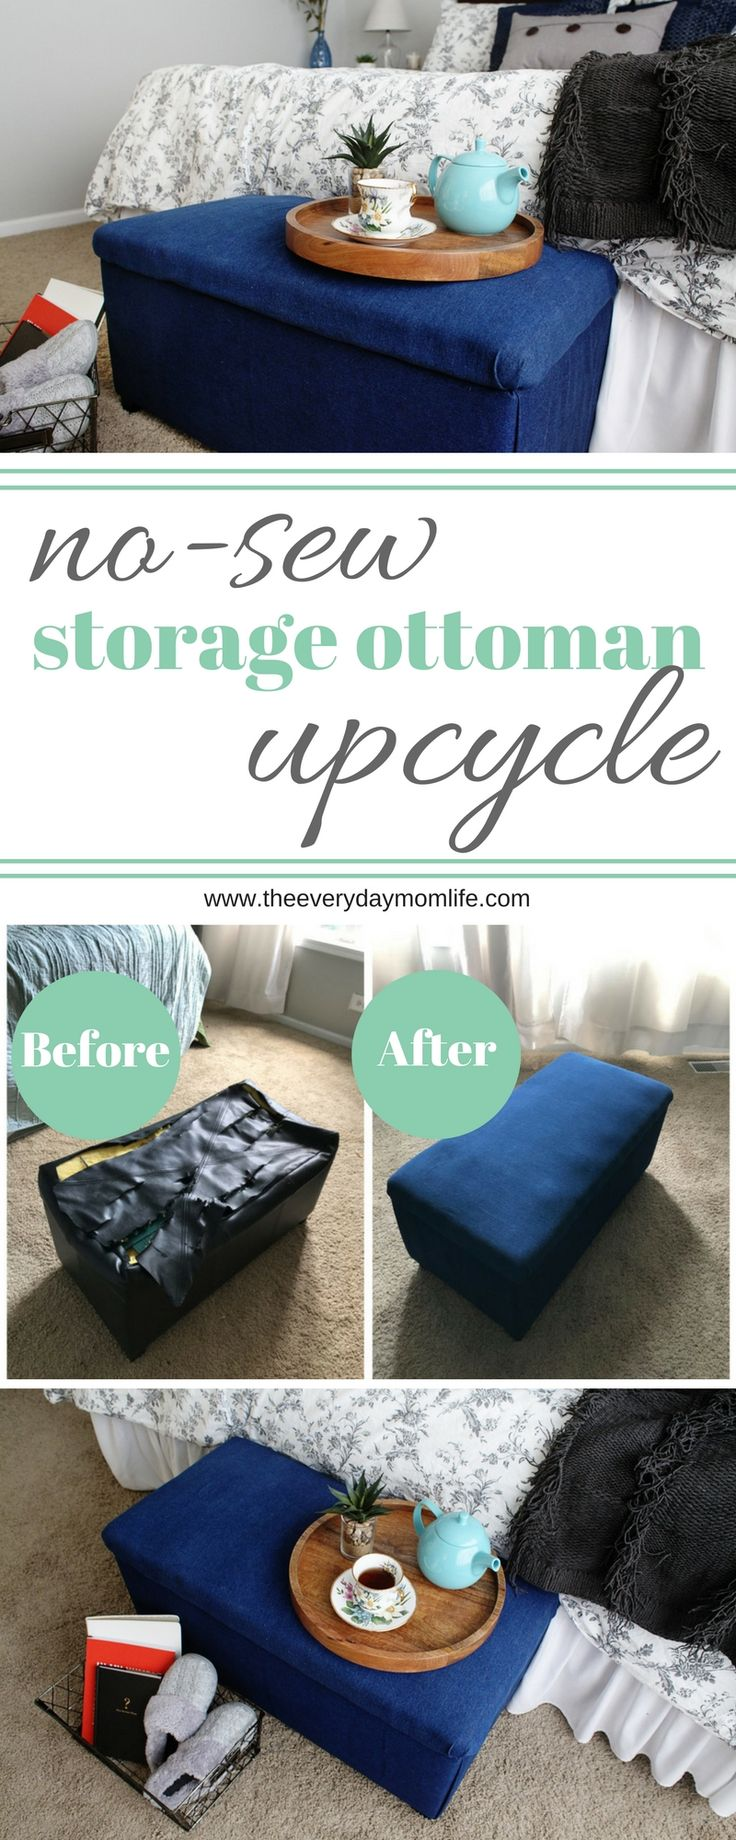 Have an old ottoman you need to recover? Check out this no-sew ottoman tutorial and upcycle your storage ottoman. No-Sew Storage Ottoman Upcycle.